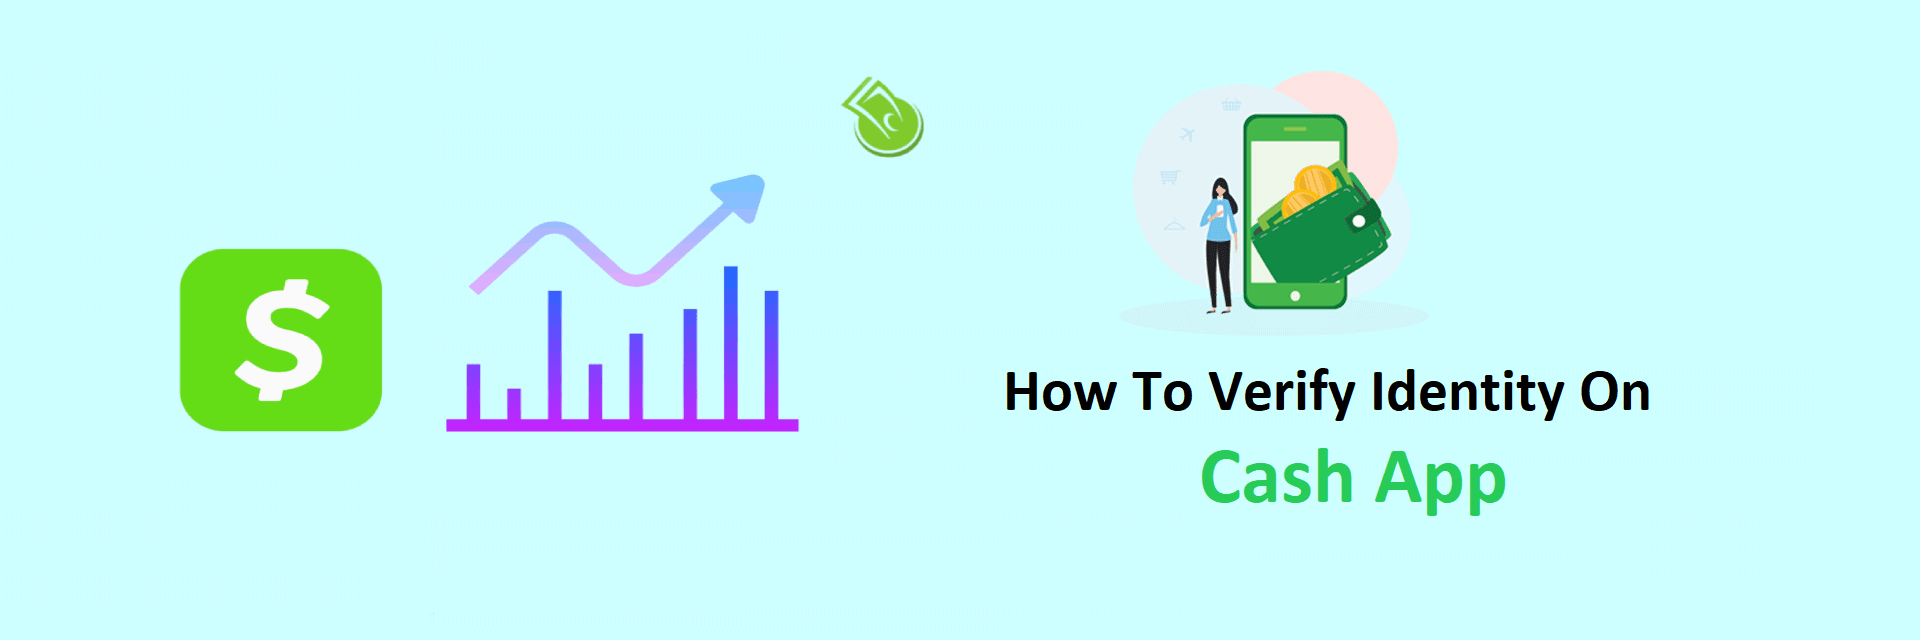 How To Verify Cash App